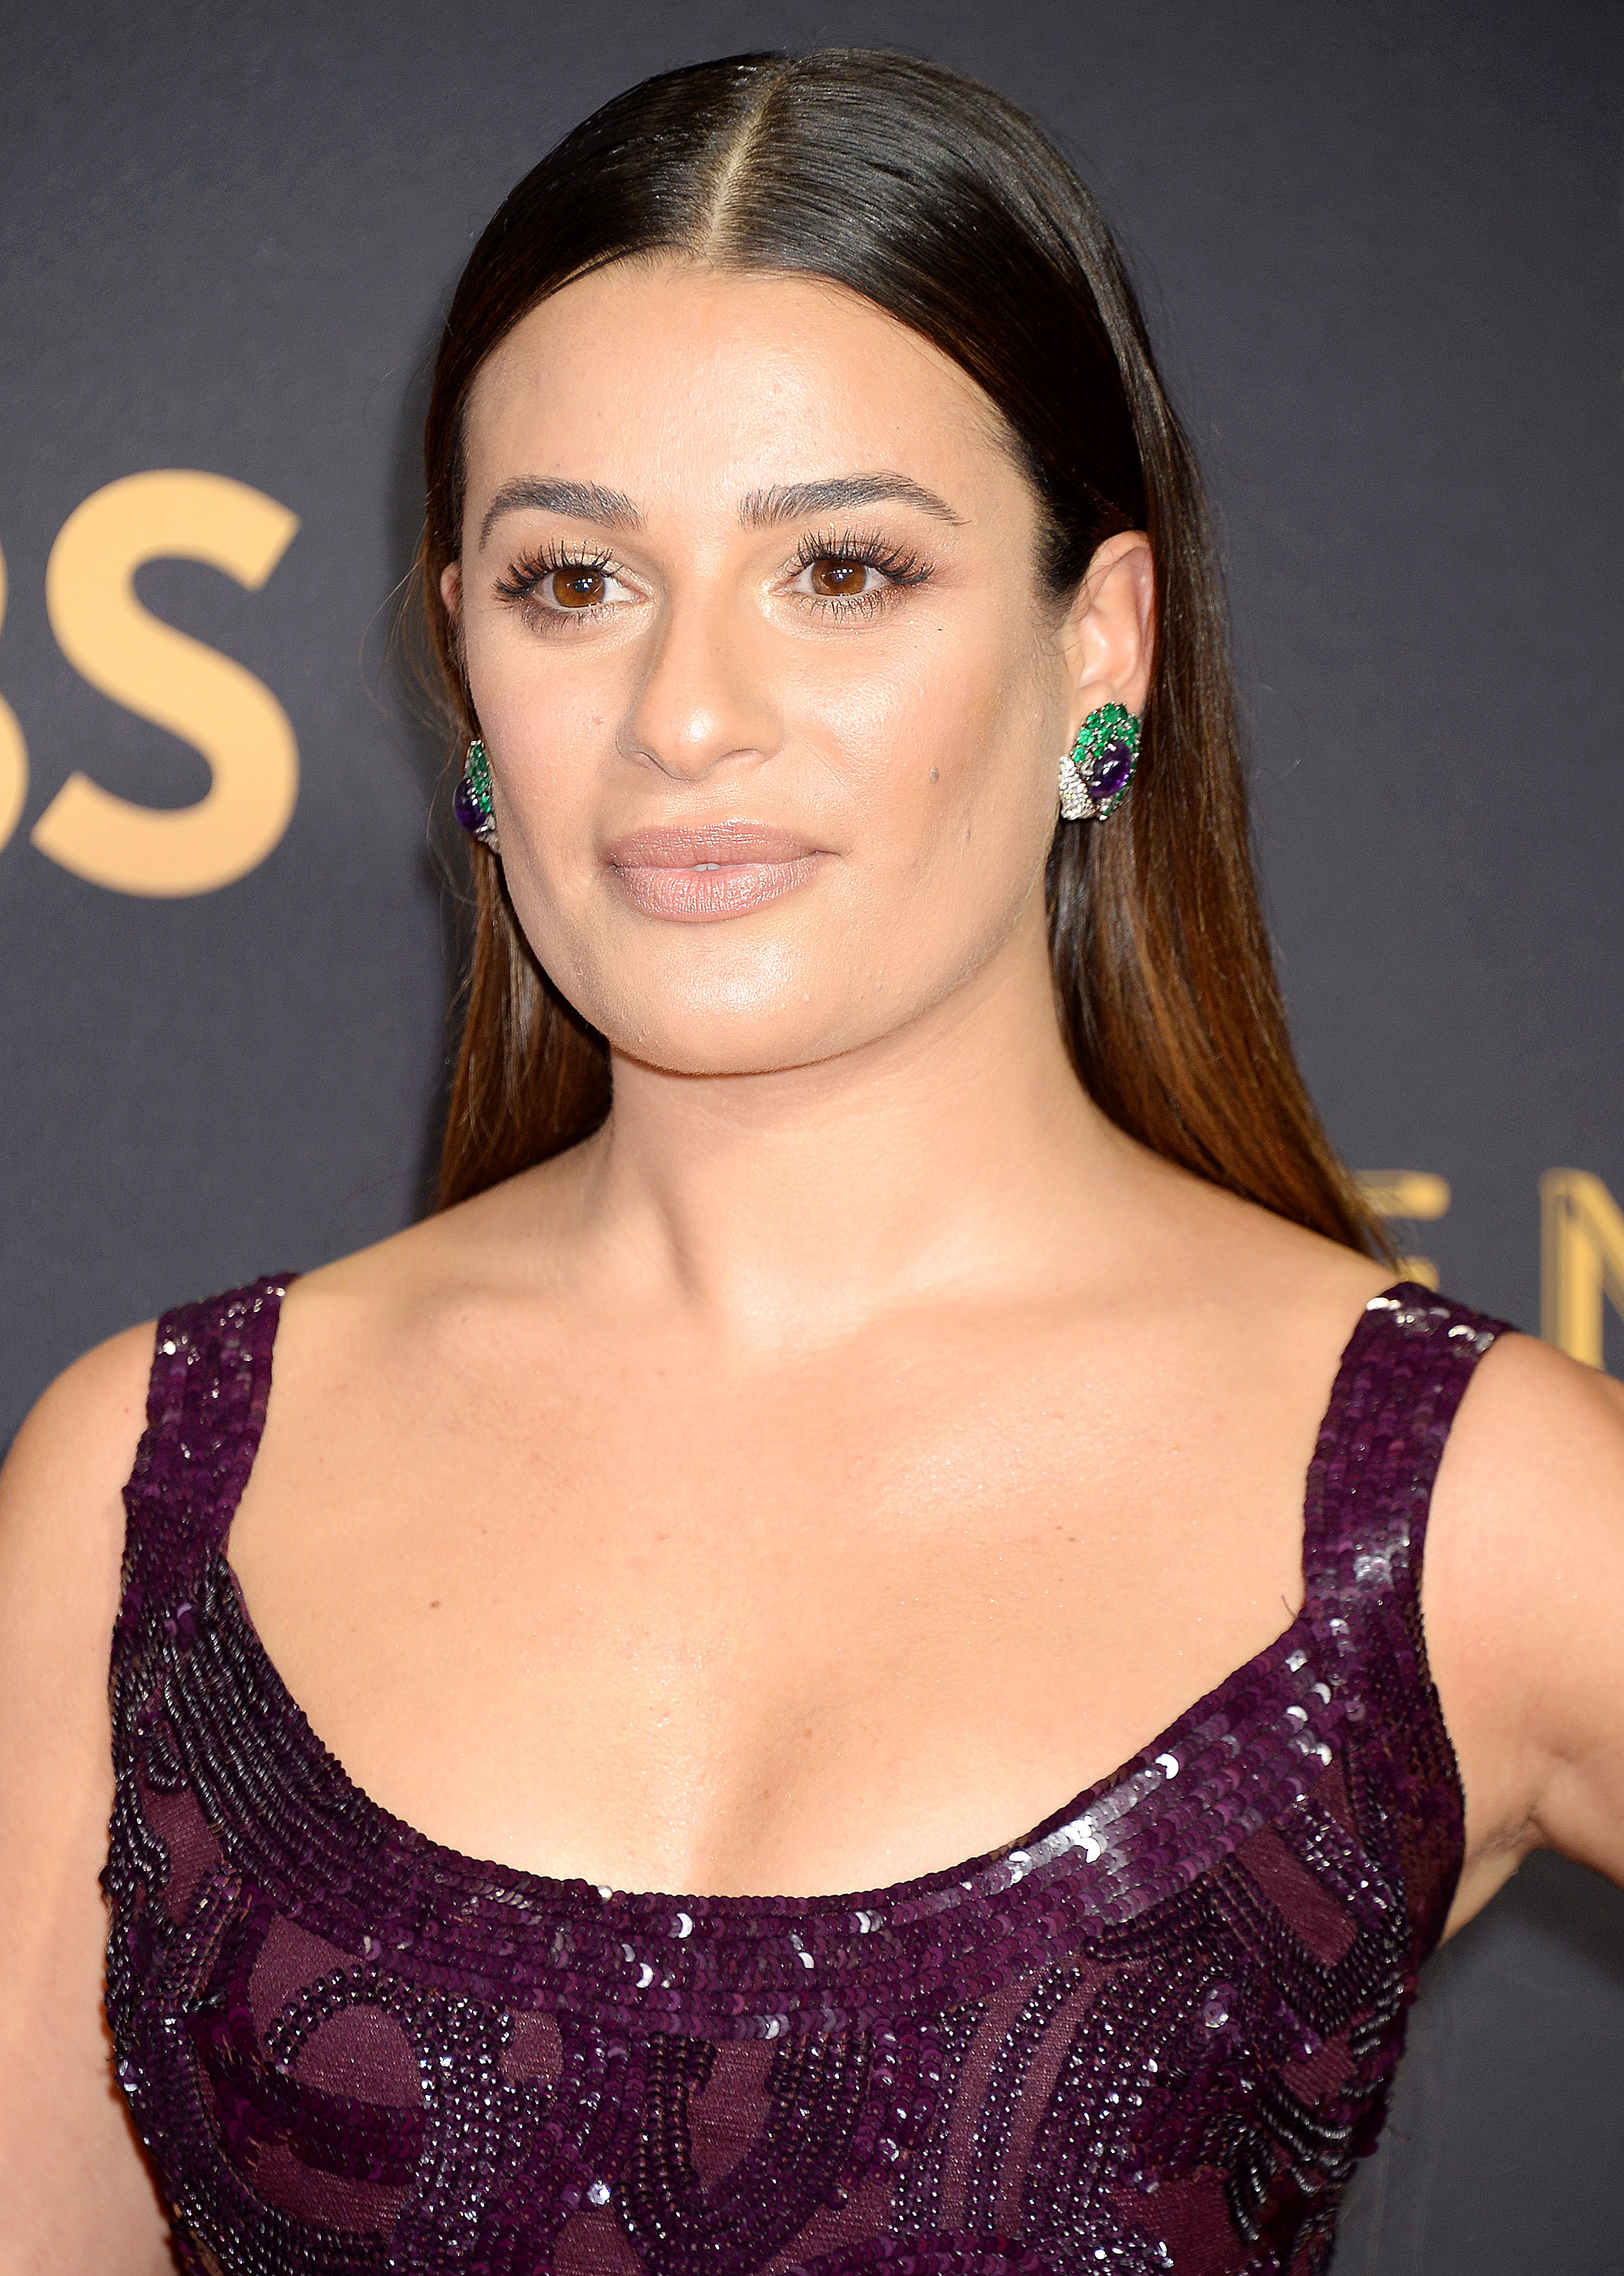 Lea Micheleattends the 69th Annual Primetime Emmy Awards at Microsoft Theater in Los Angeles on Sept. 17, 2017.